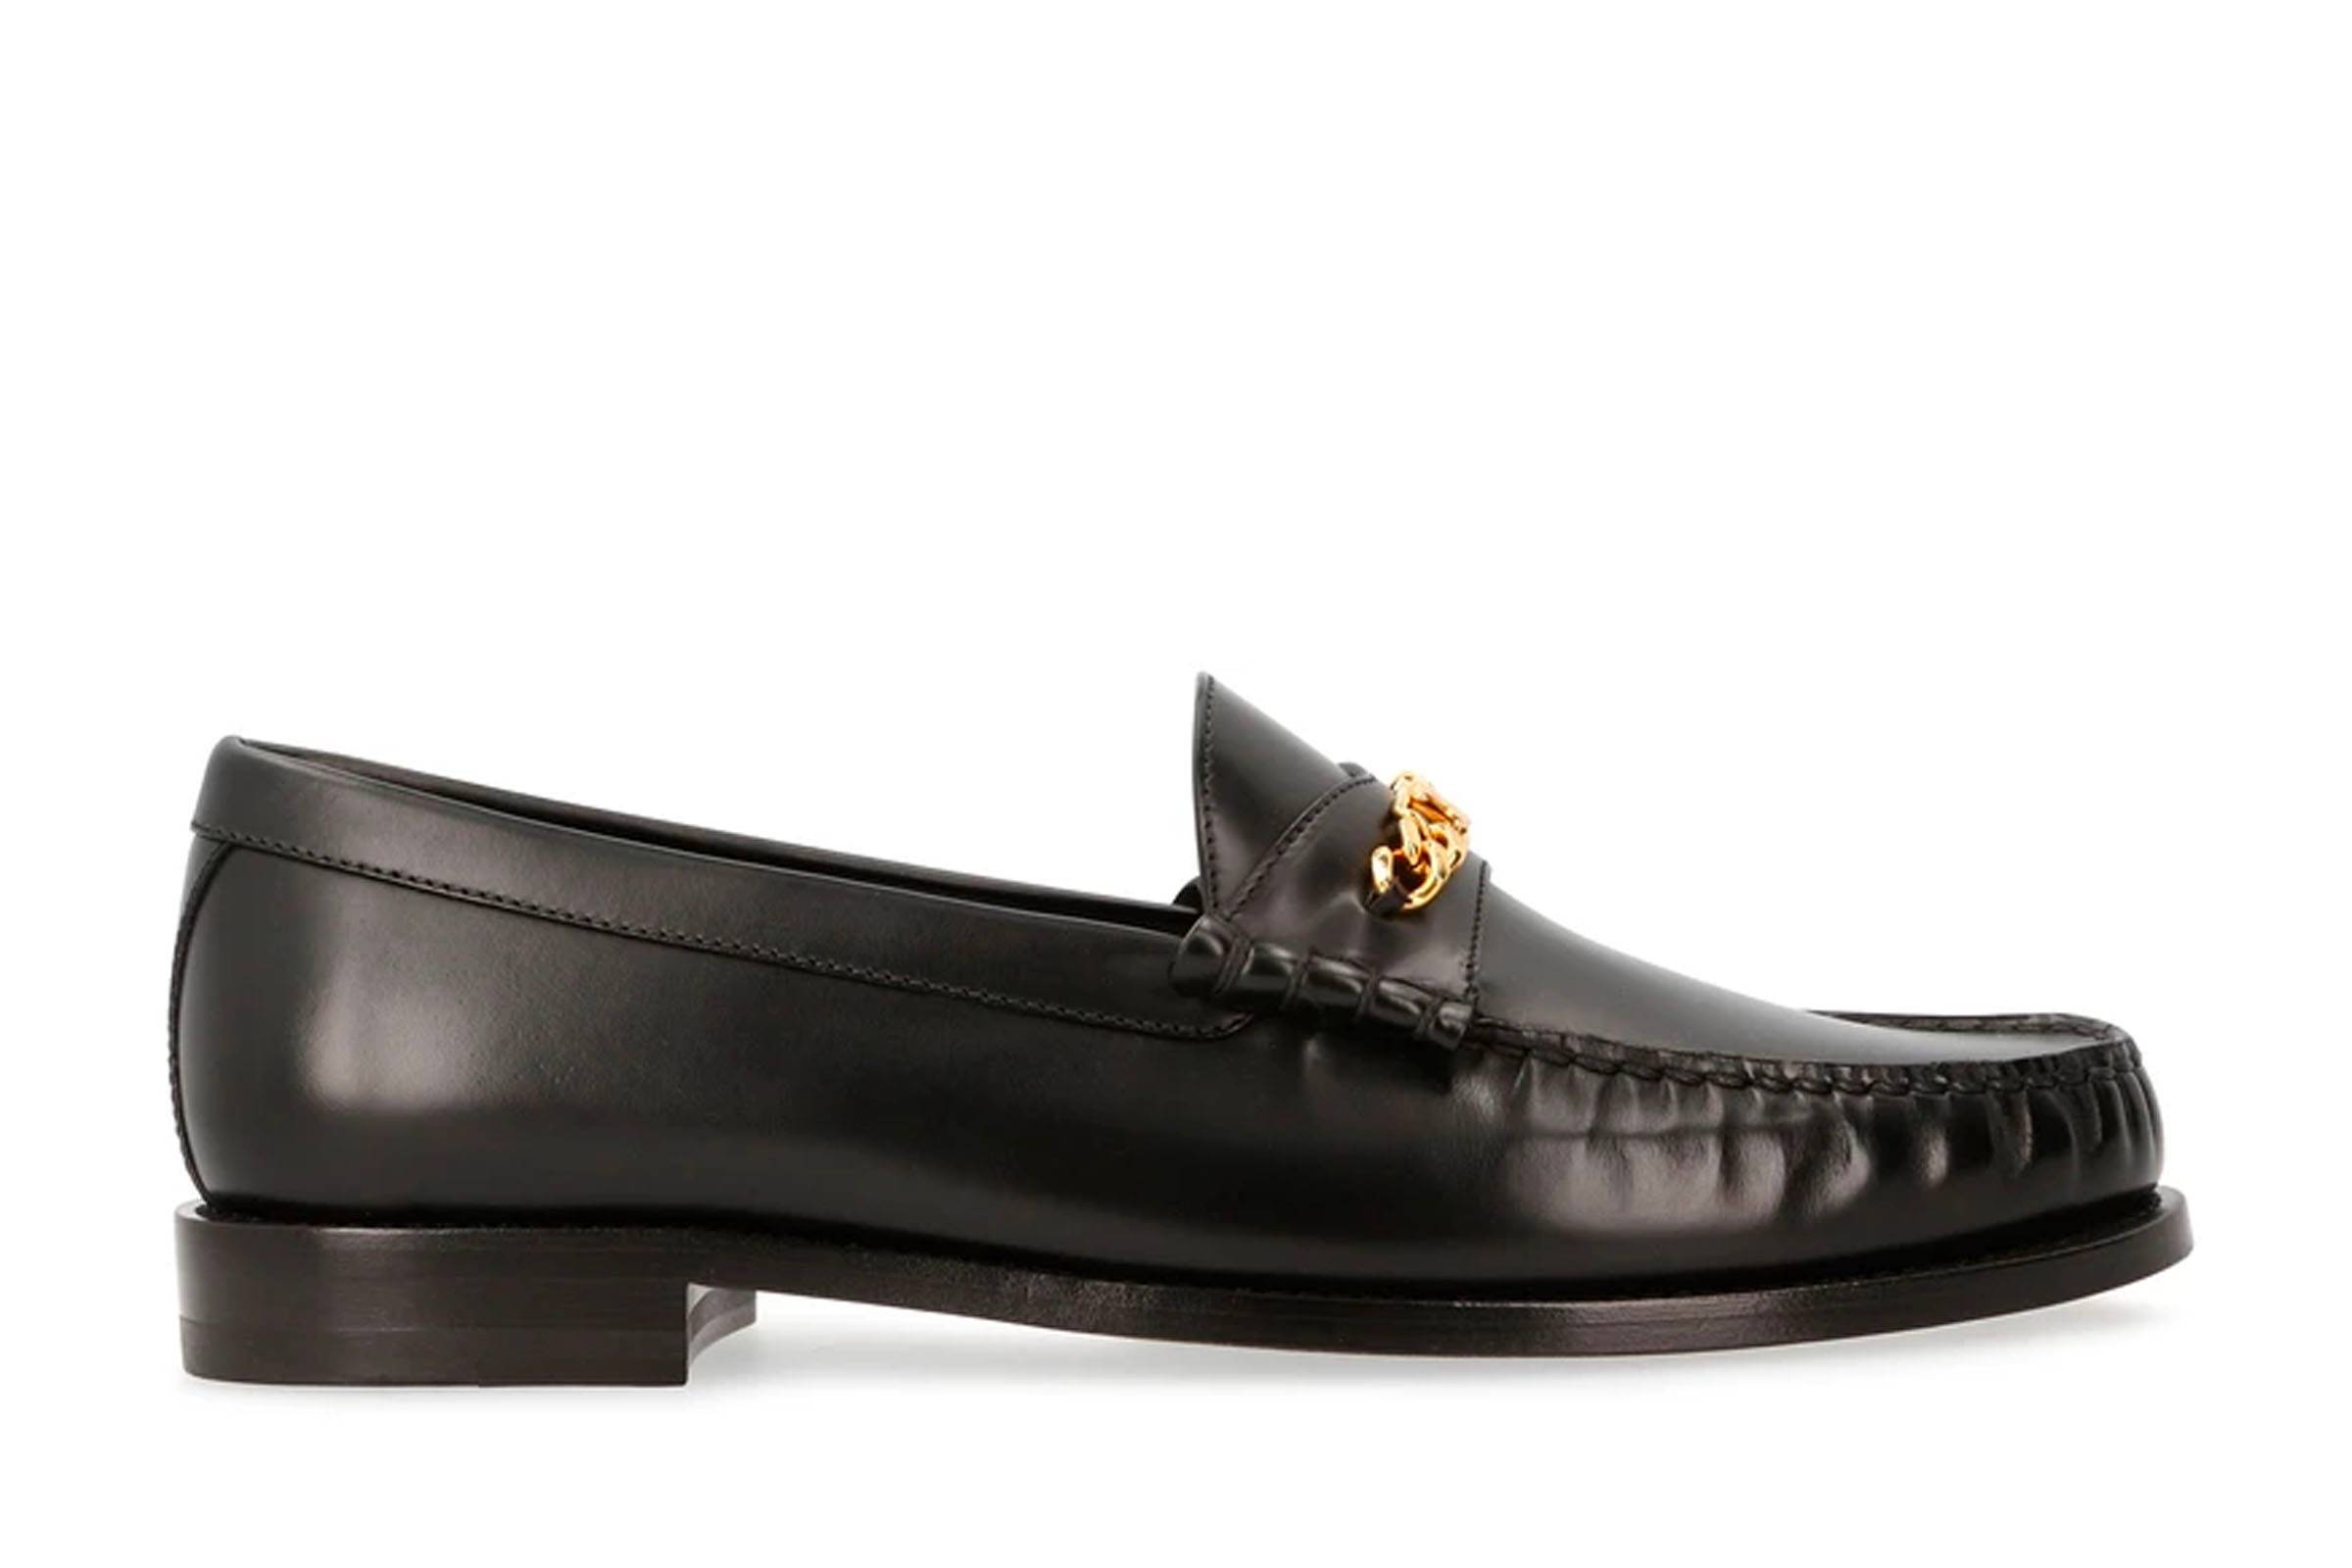 Celine Luco Triomphe Chain Loafer